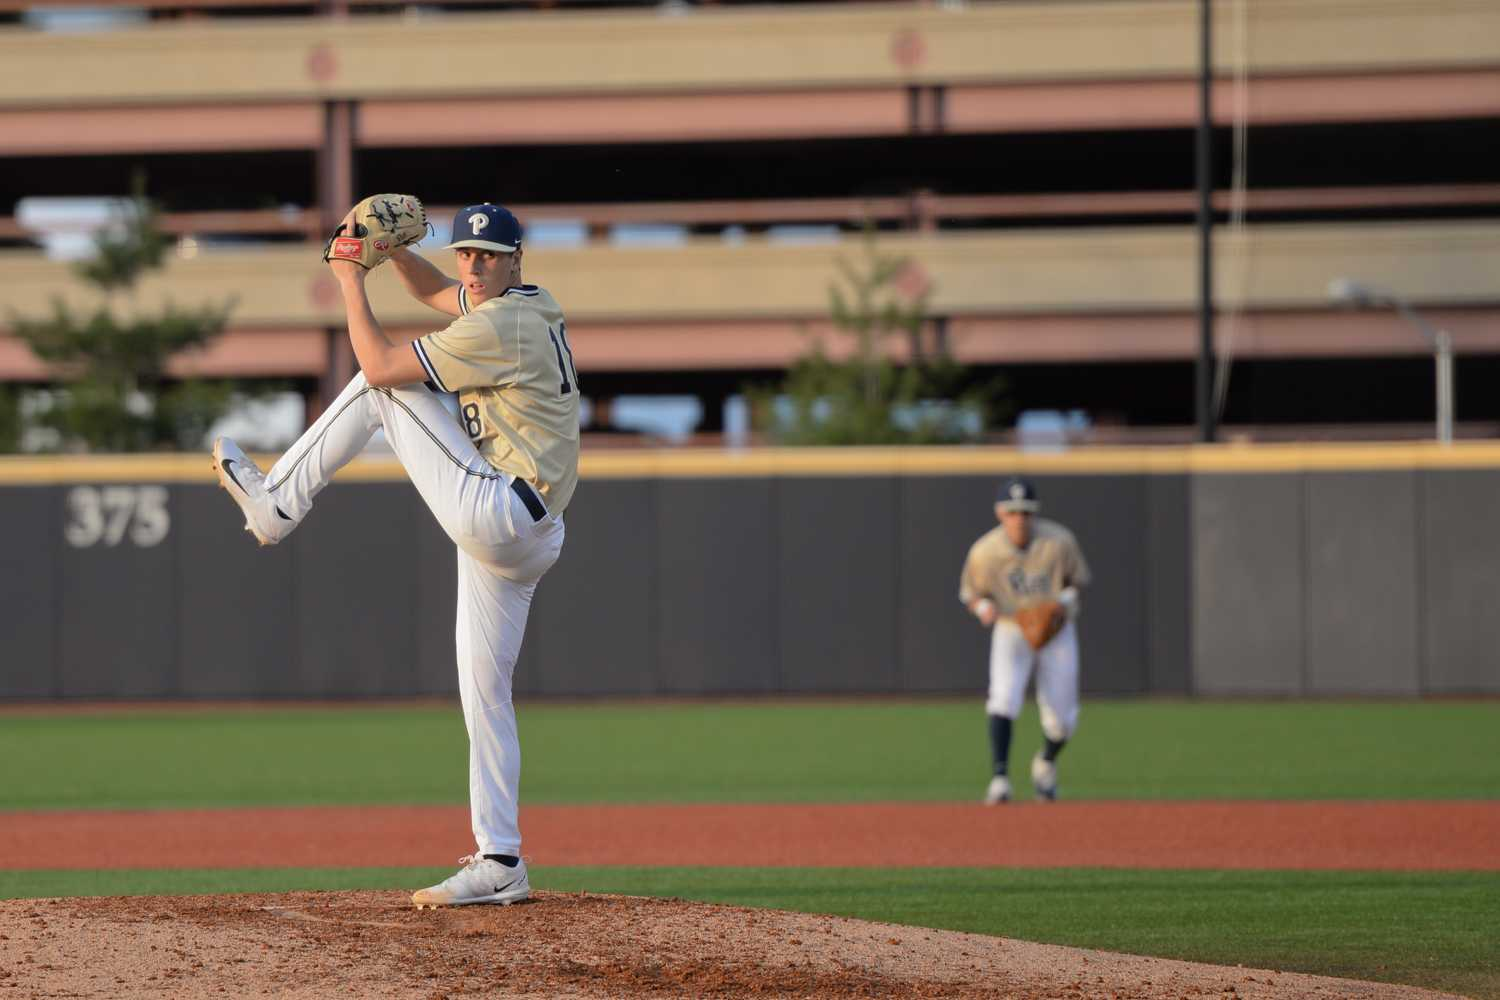 Sophomore pitcher Dan Hammer (18) allowed two runs over 3.1 innings in Pitt's 5-2 loss to Louisville Saturday afternoon. (TPN File Photo)